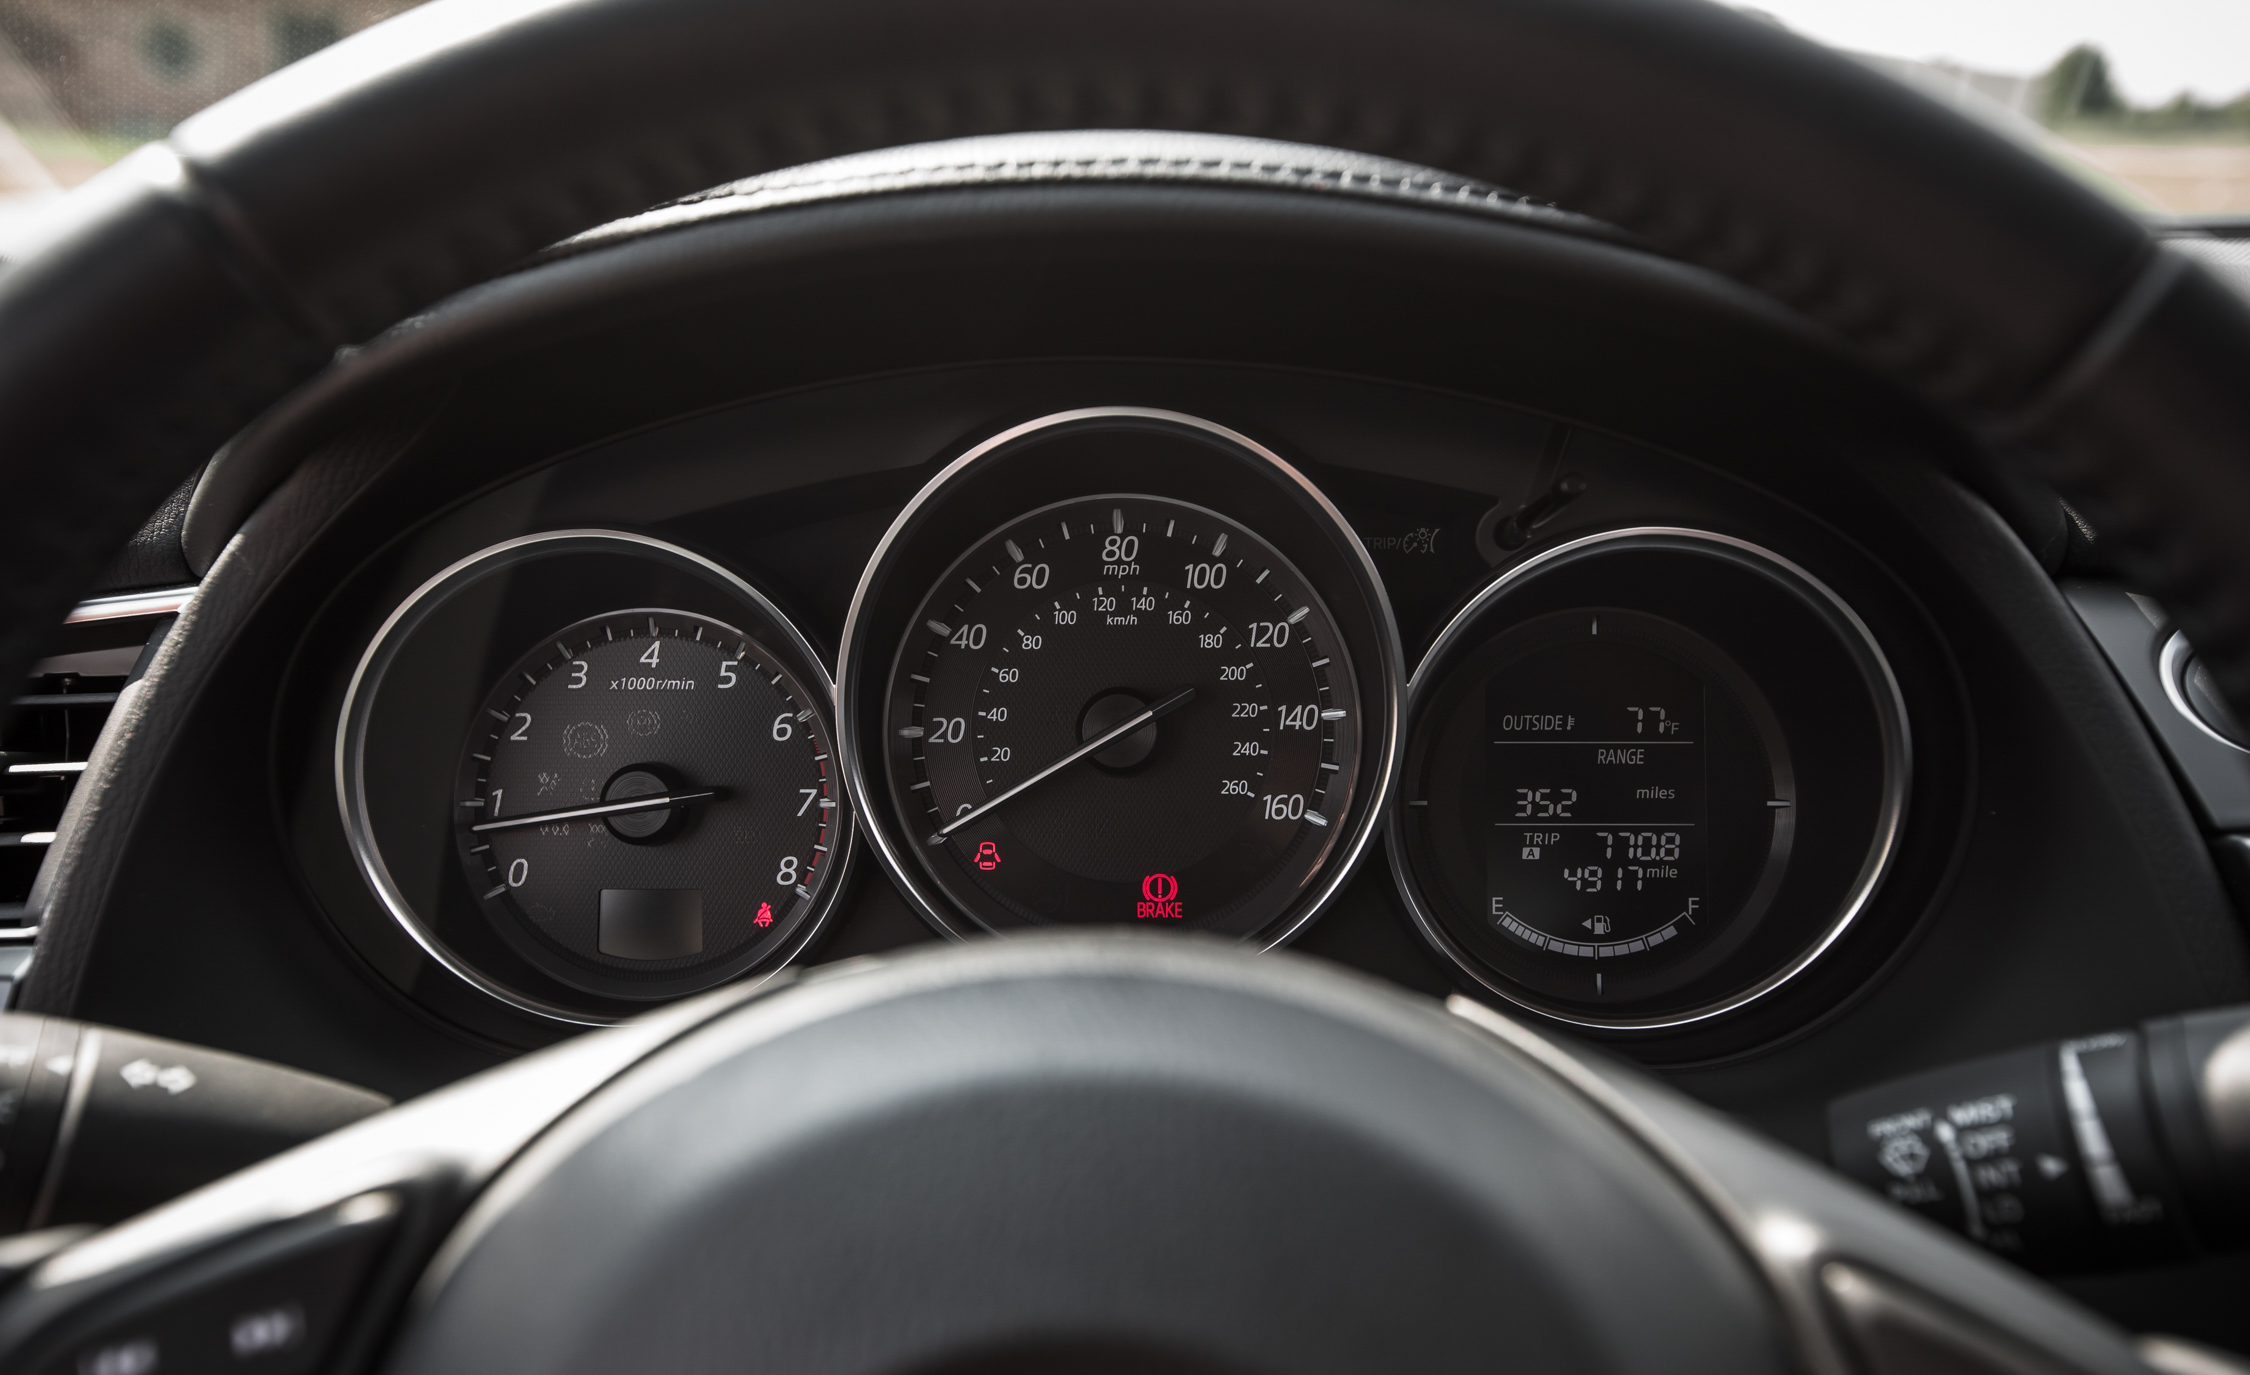 2016 Mazda 6 Touring Interior Speedometer